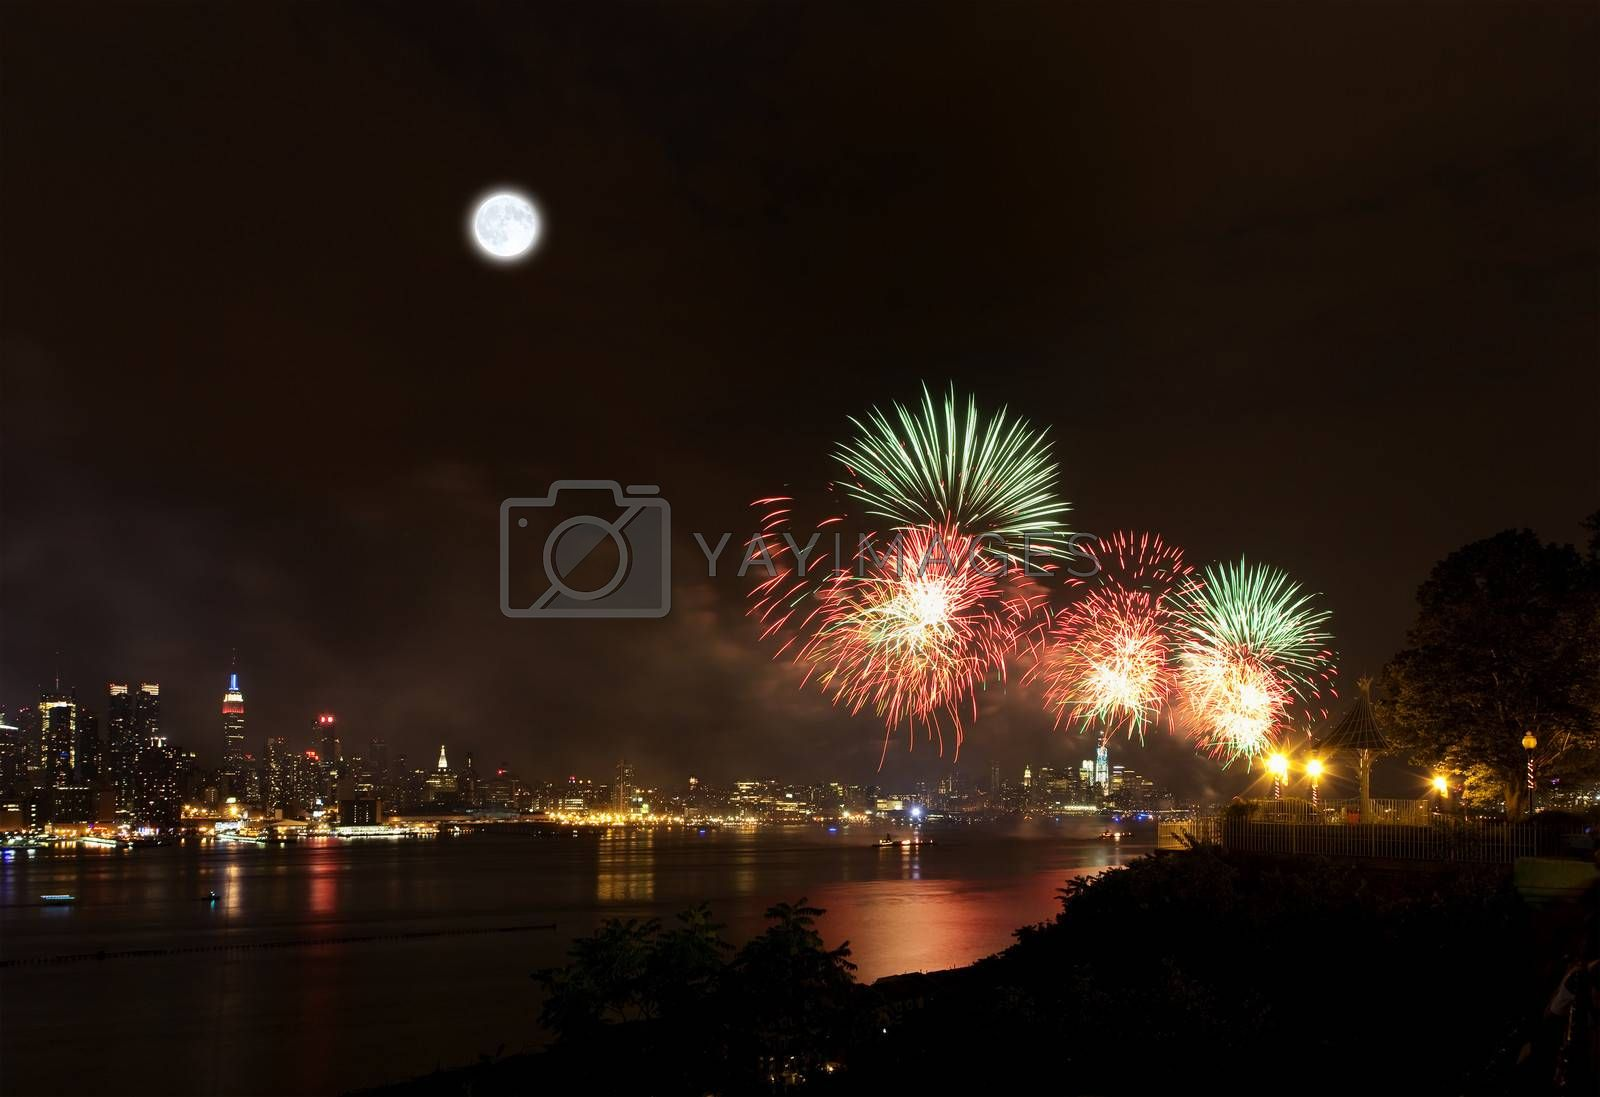 The July 4th firework over Hudson River in New York City